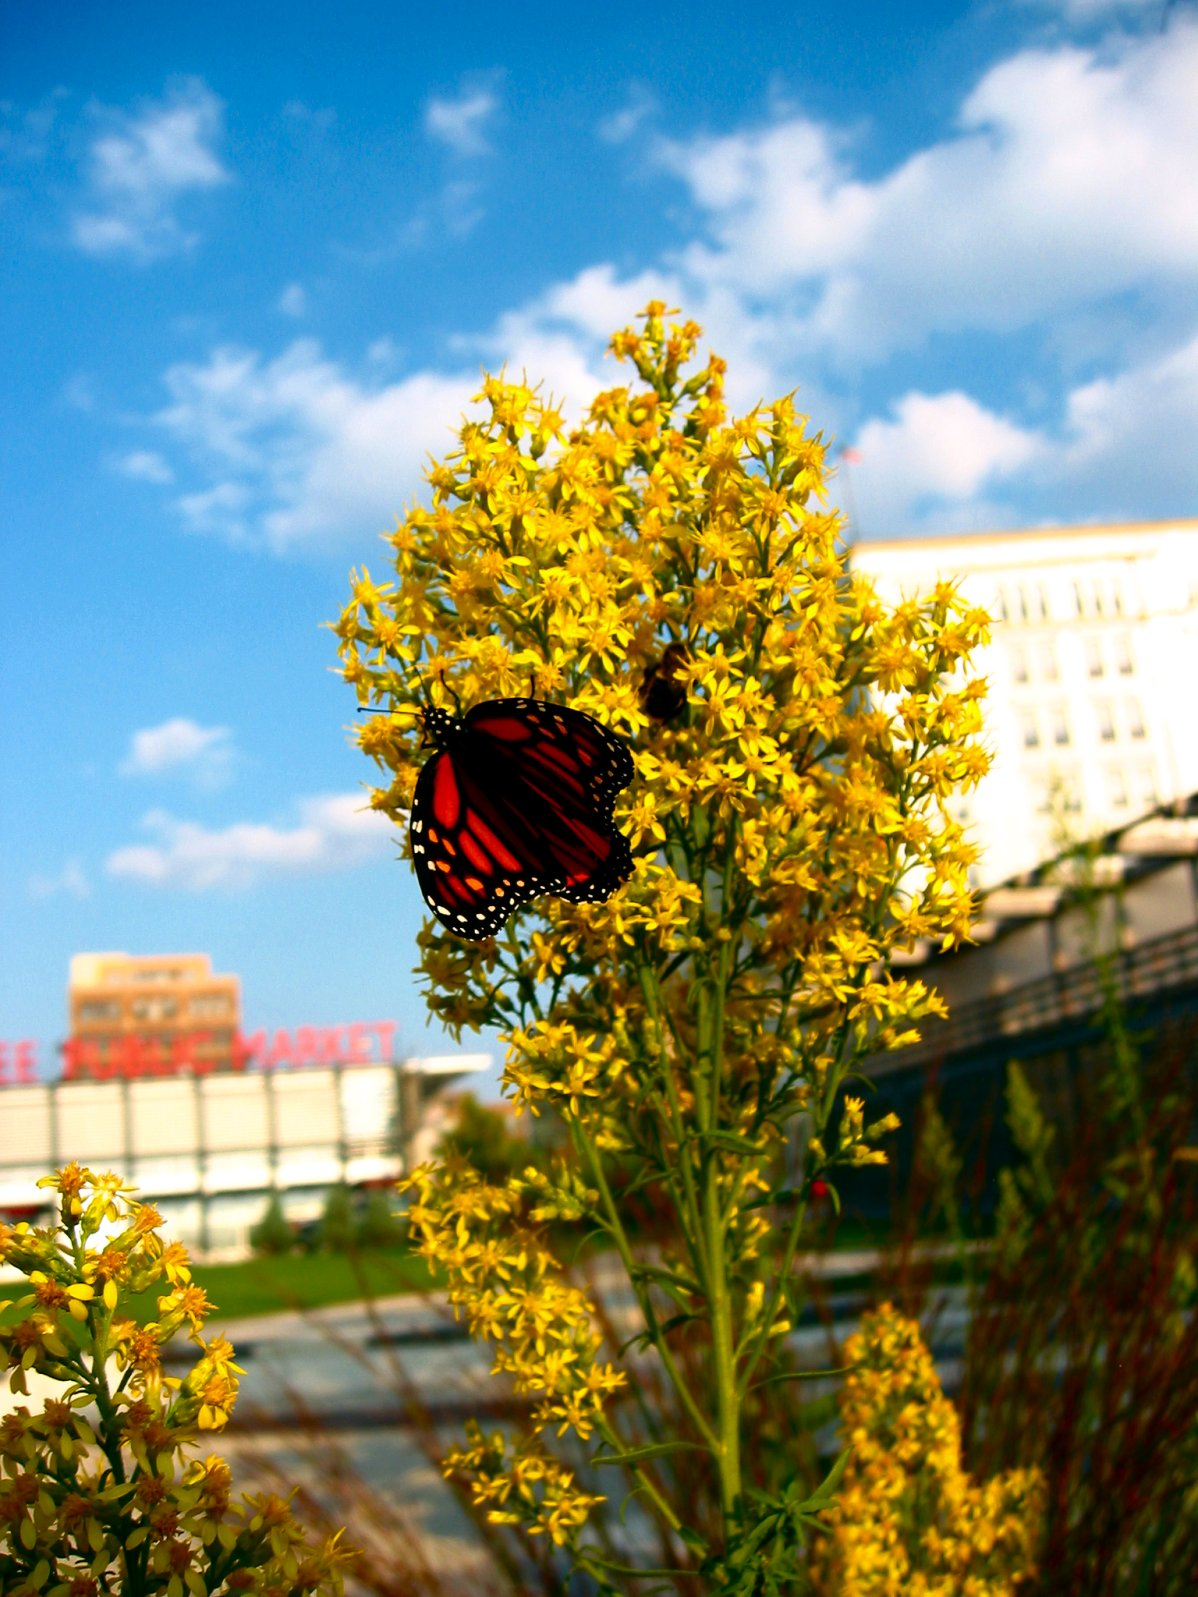 Fall 2008 Monarch Butterfly Migration in Milwaukee Wisconsin - soul-amp.com